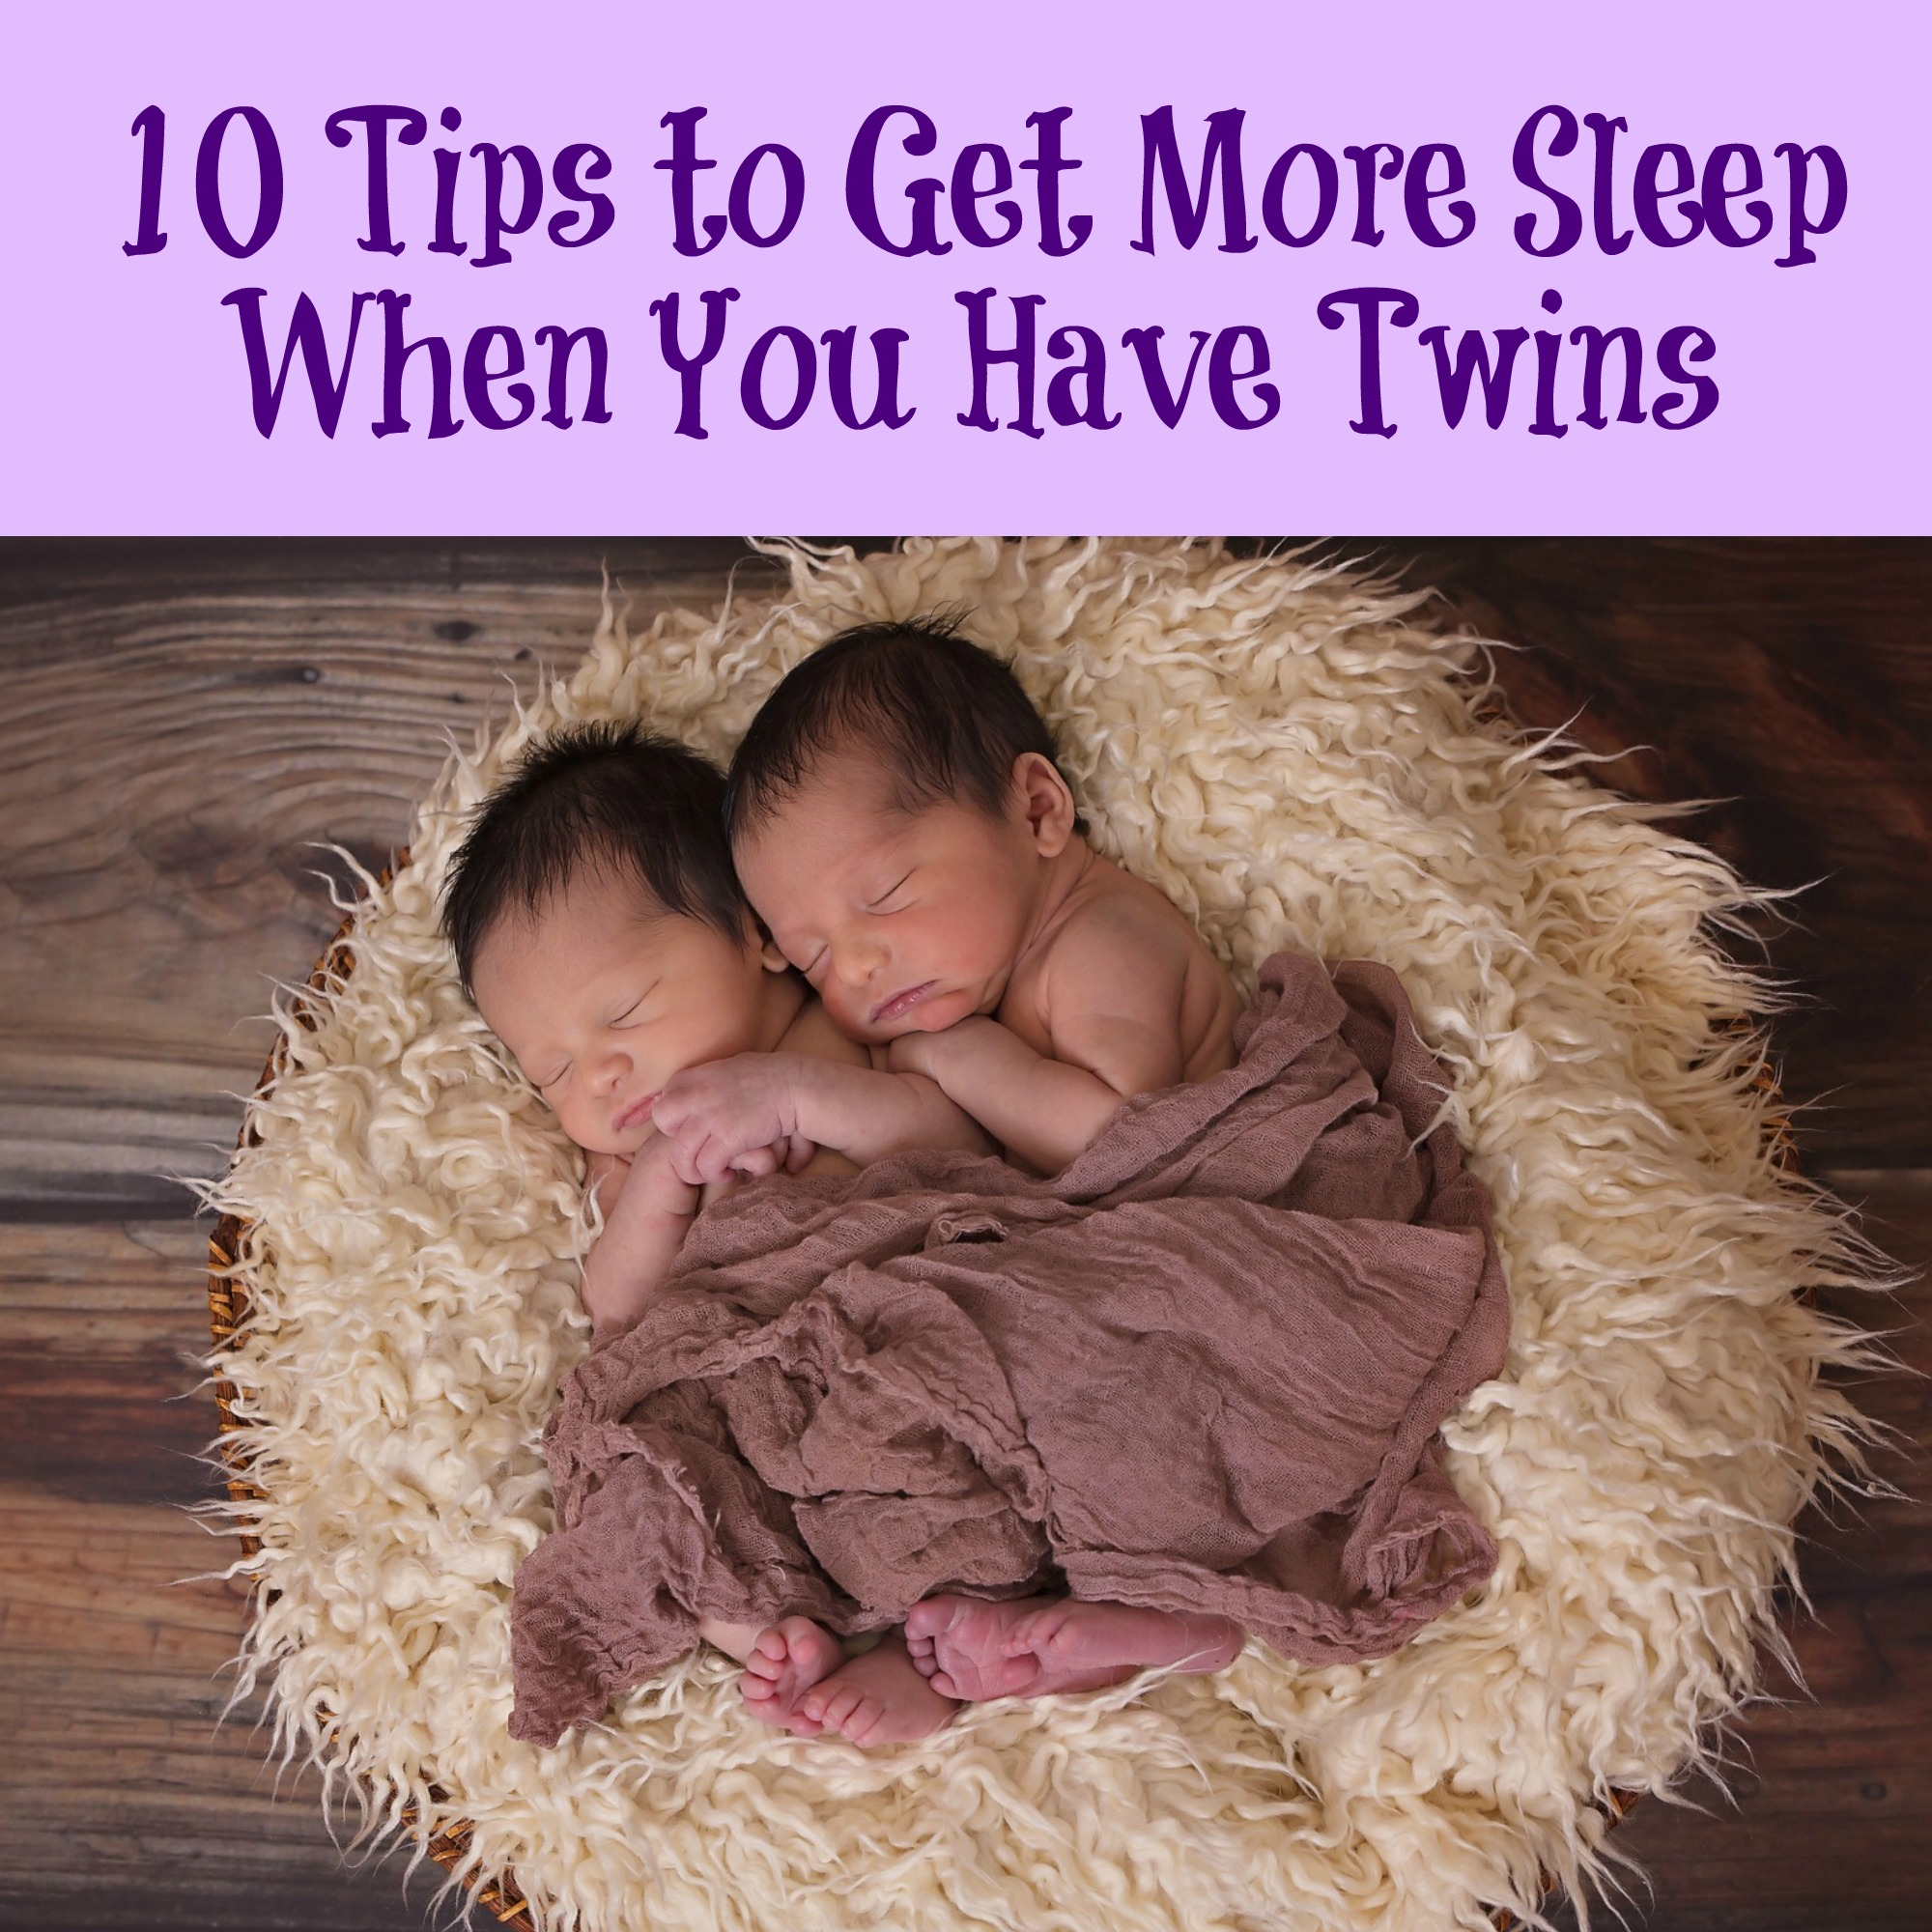 10 Tips to Get More Sleep When You Have Twins